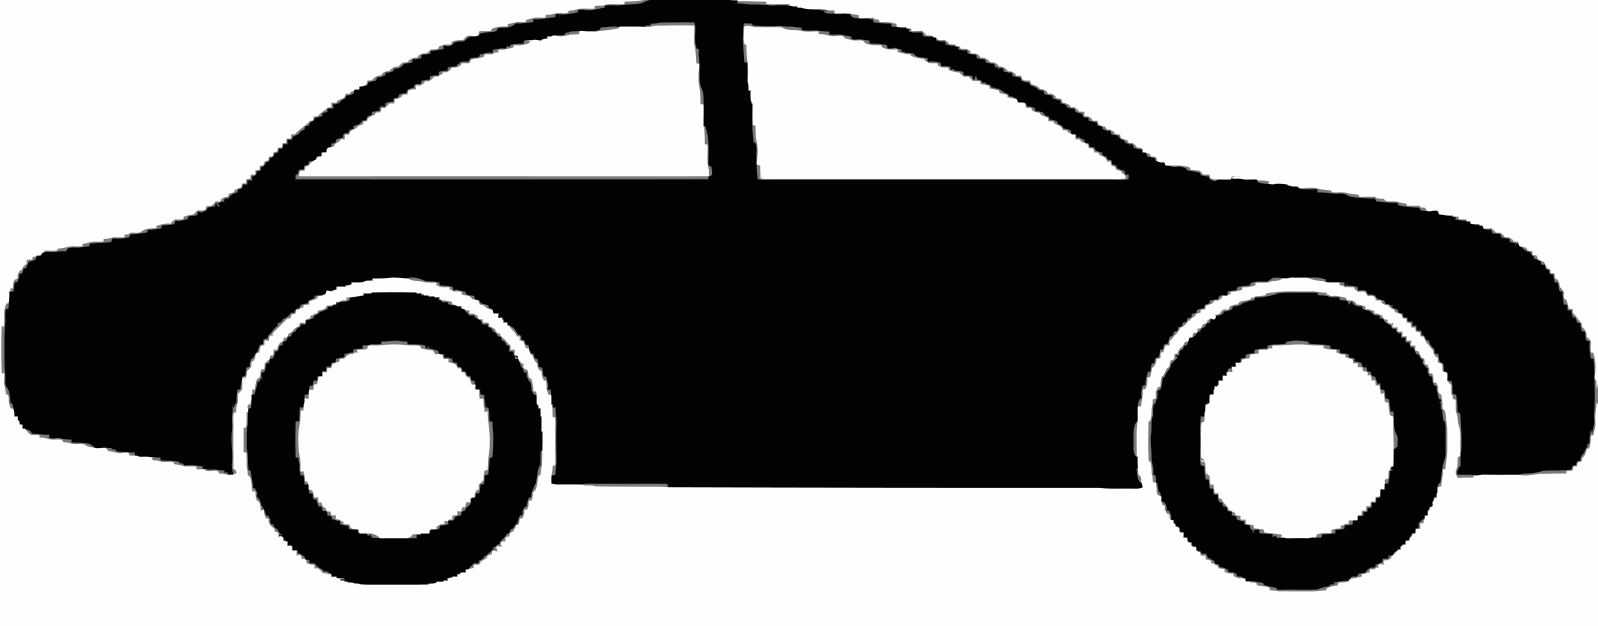 Line Art Cars Png Line Art Cars Png - Clipart library